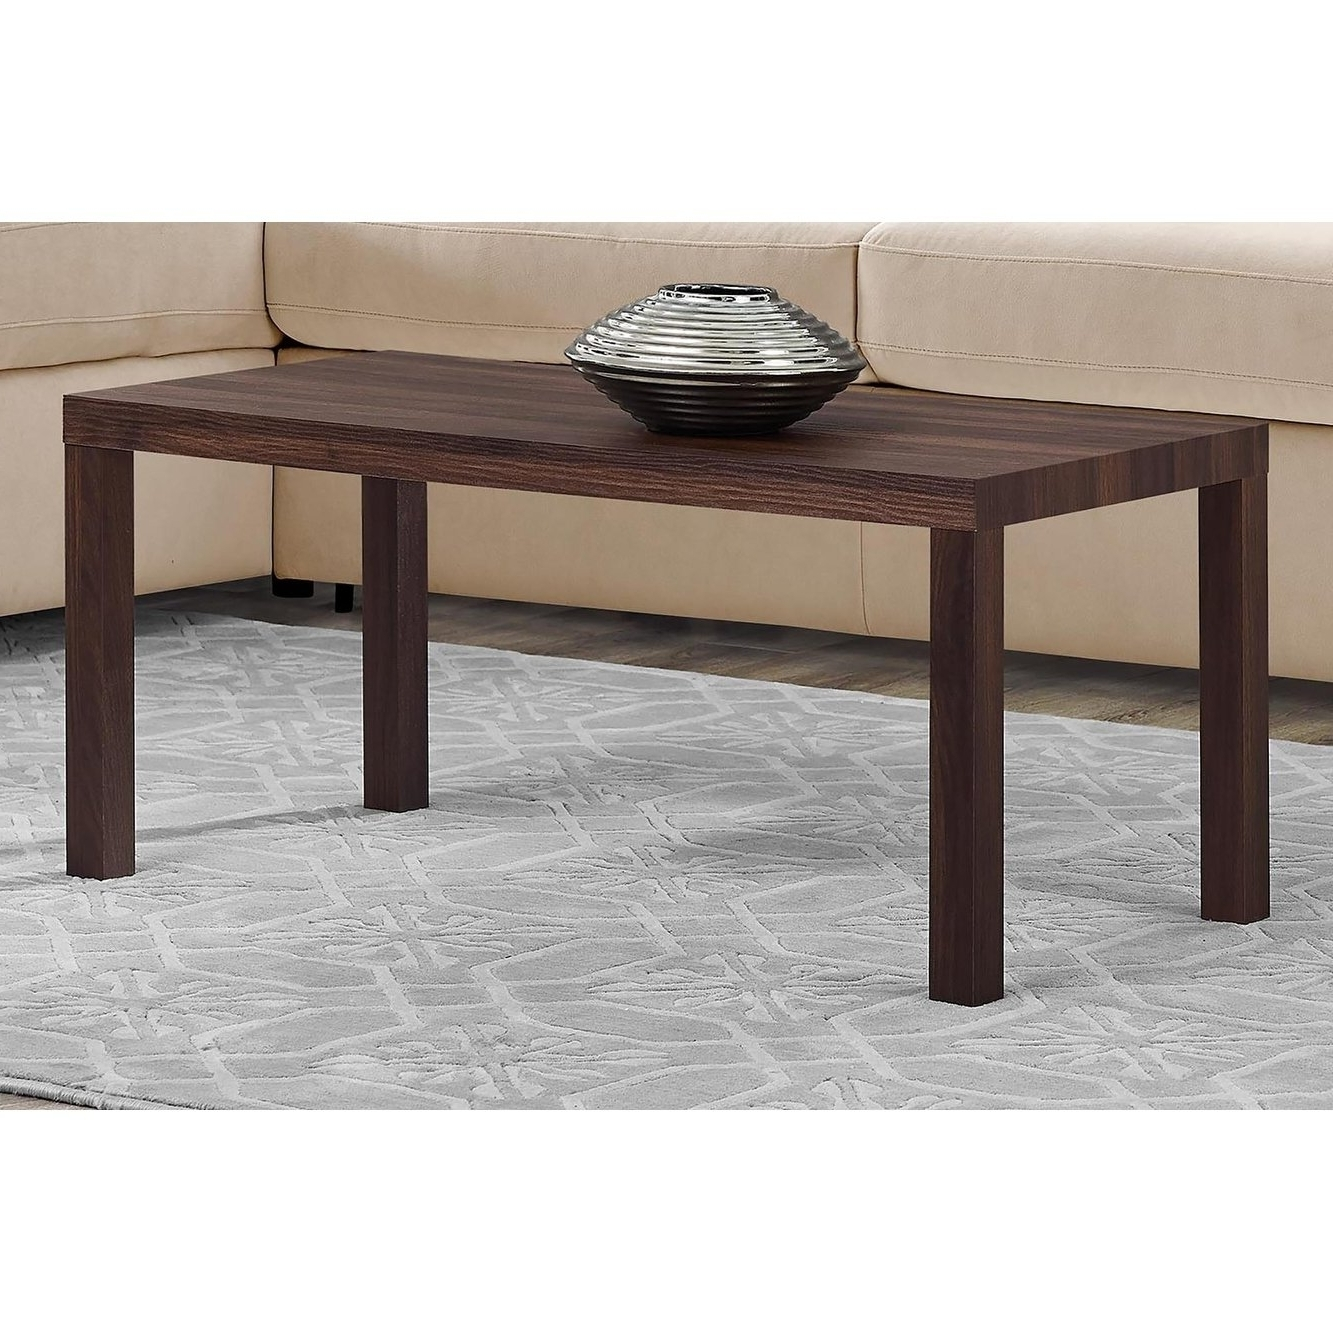 Newest Jaxon Cocktail Tables Pertaining To Shop Avenue Greene Jaxon Walnut Coffee Table – Free Shipping Today (Gallery 3 of 20)